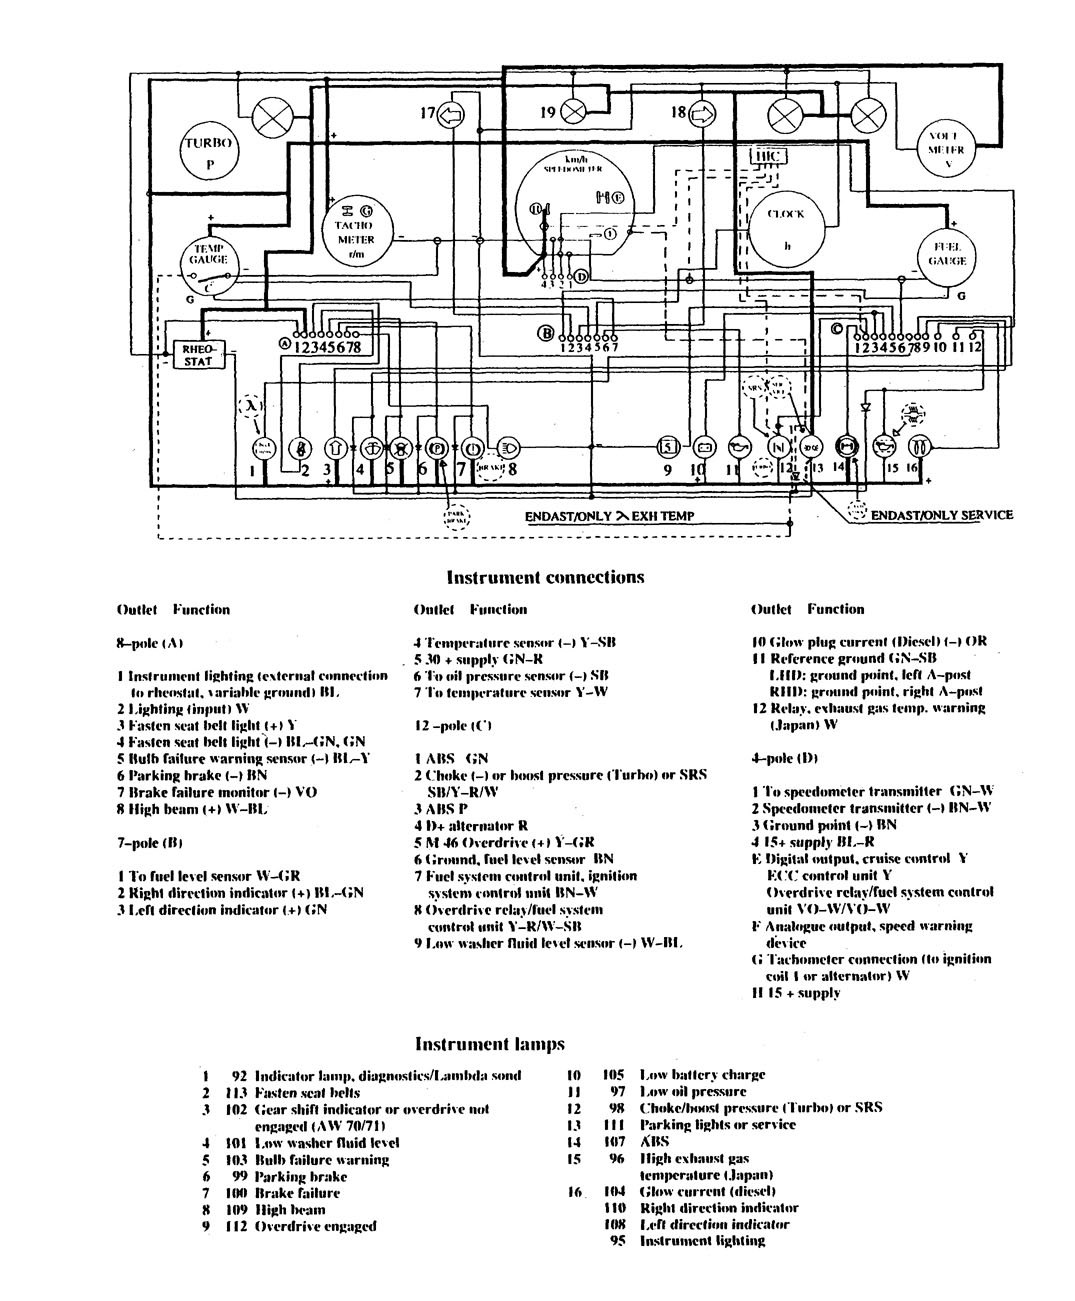 98 Volvo S70 Fuse Diagram Real Wiring 2000 V70 Ignition Cylinder Glt Engine Front Brakes 1998 Radio